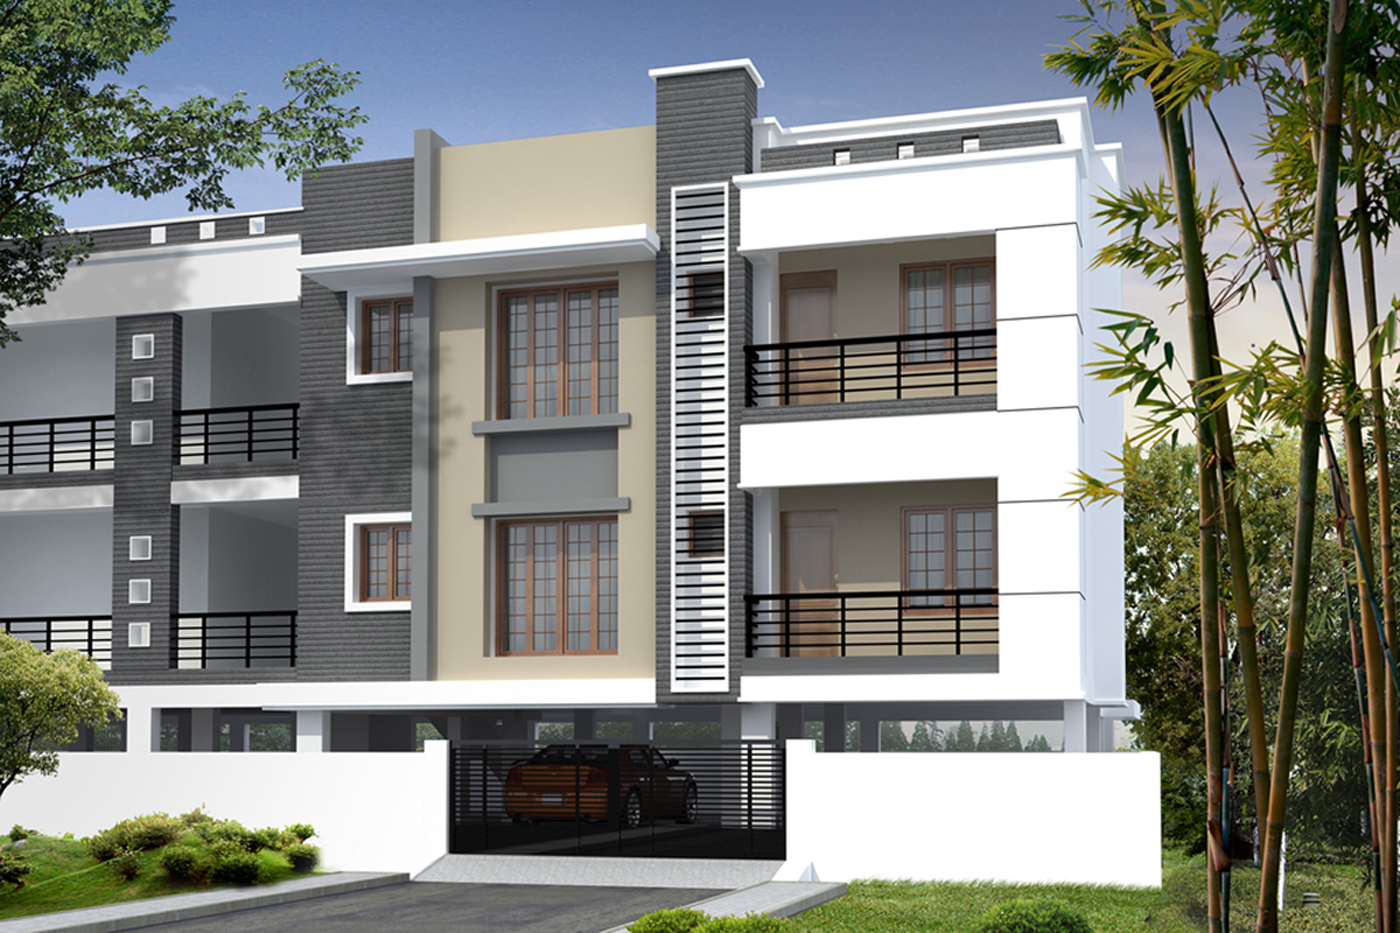 Property in agra agra real estate in buy residential commercial property in agra agra for Single bedroom flats for rent in chennai